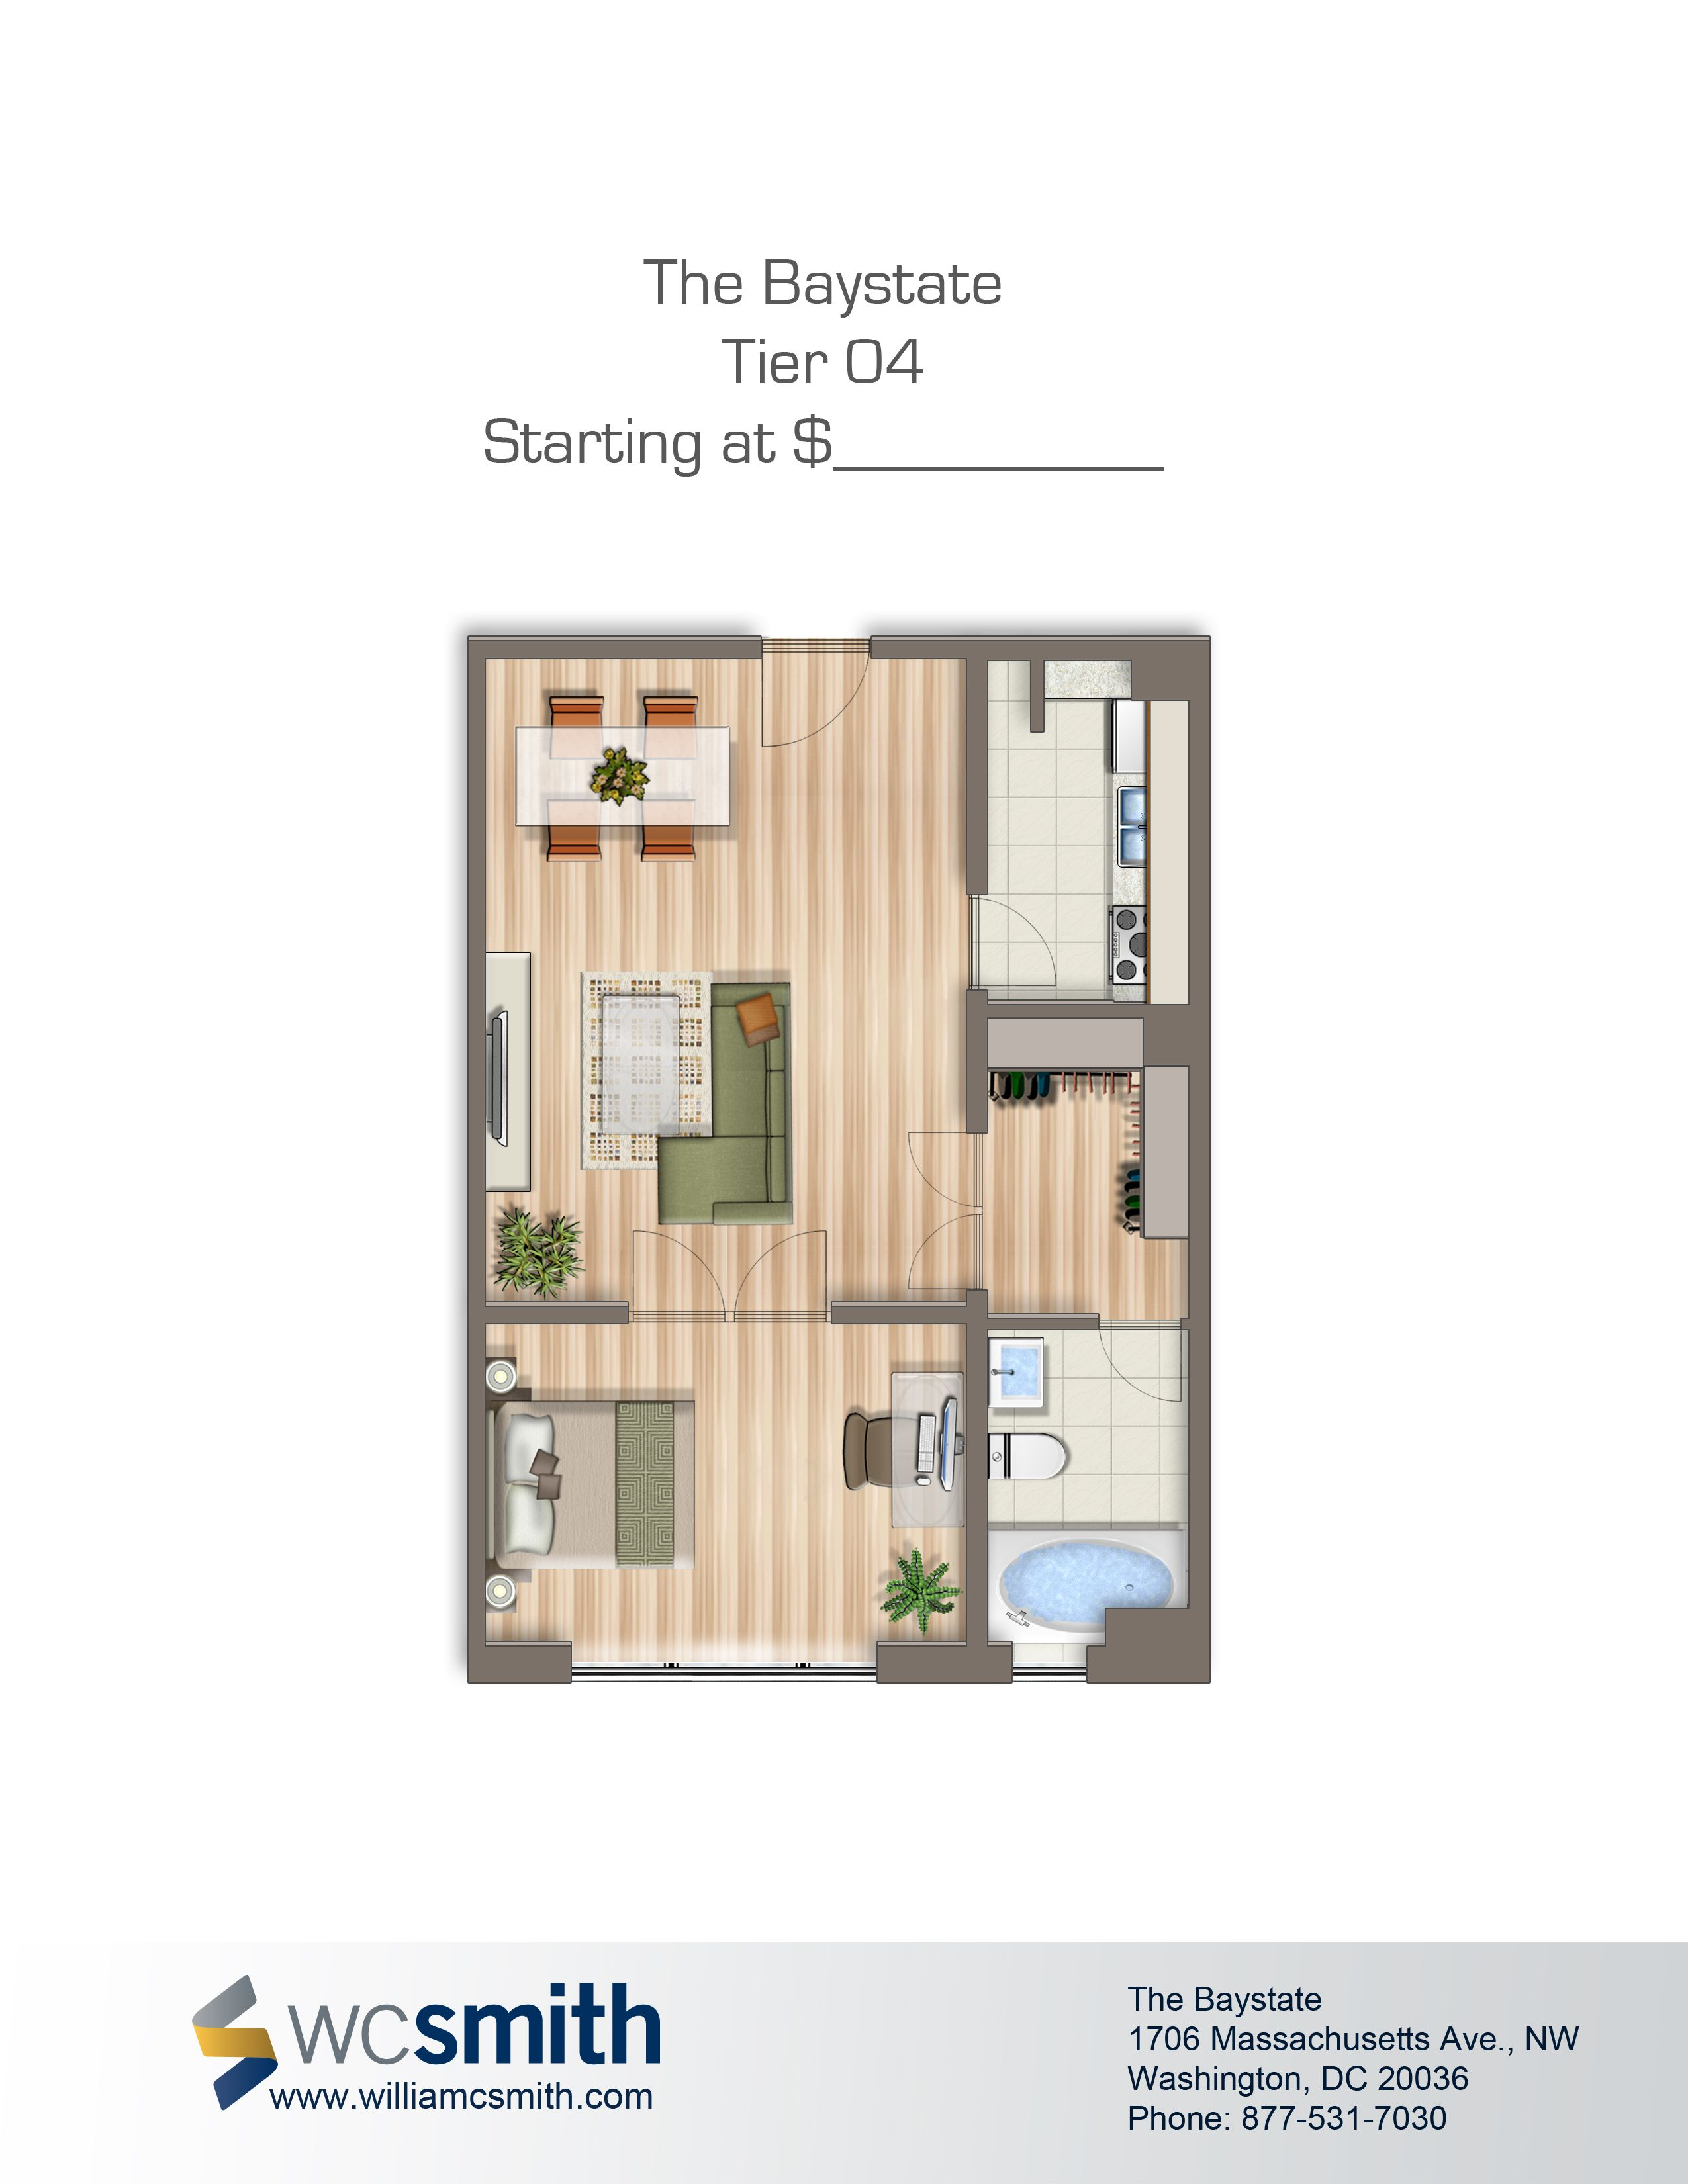 Baystate apartments bedroom floor plans and washington dc - Washington dc 1 bedroom apartments ...